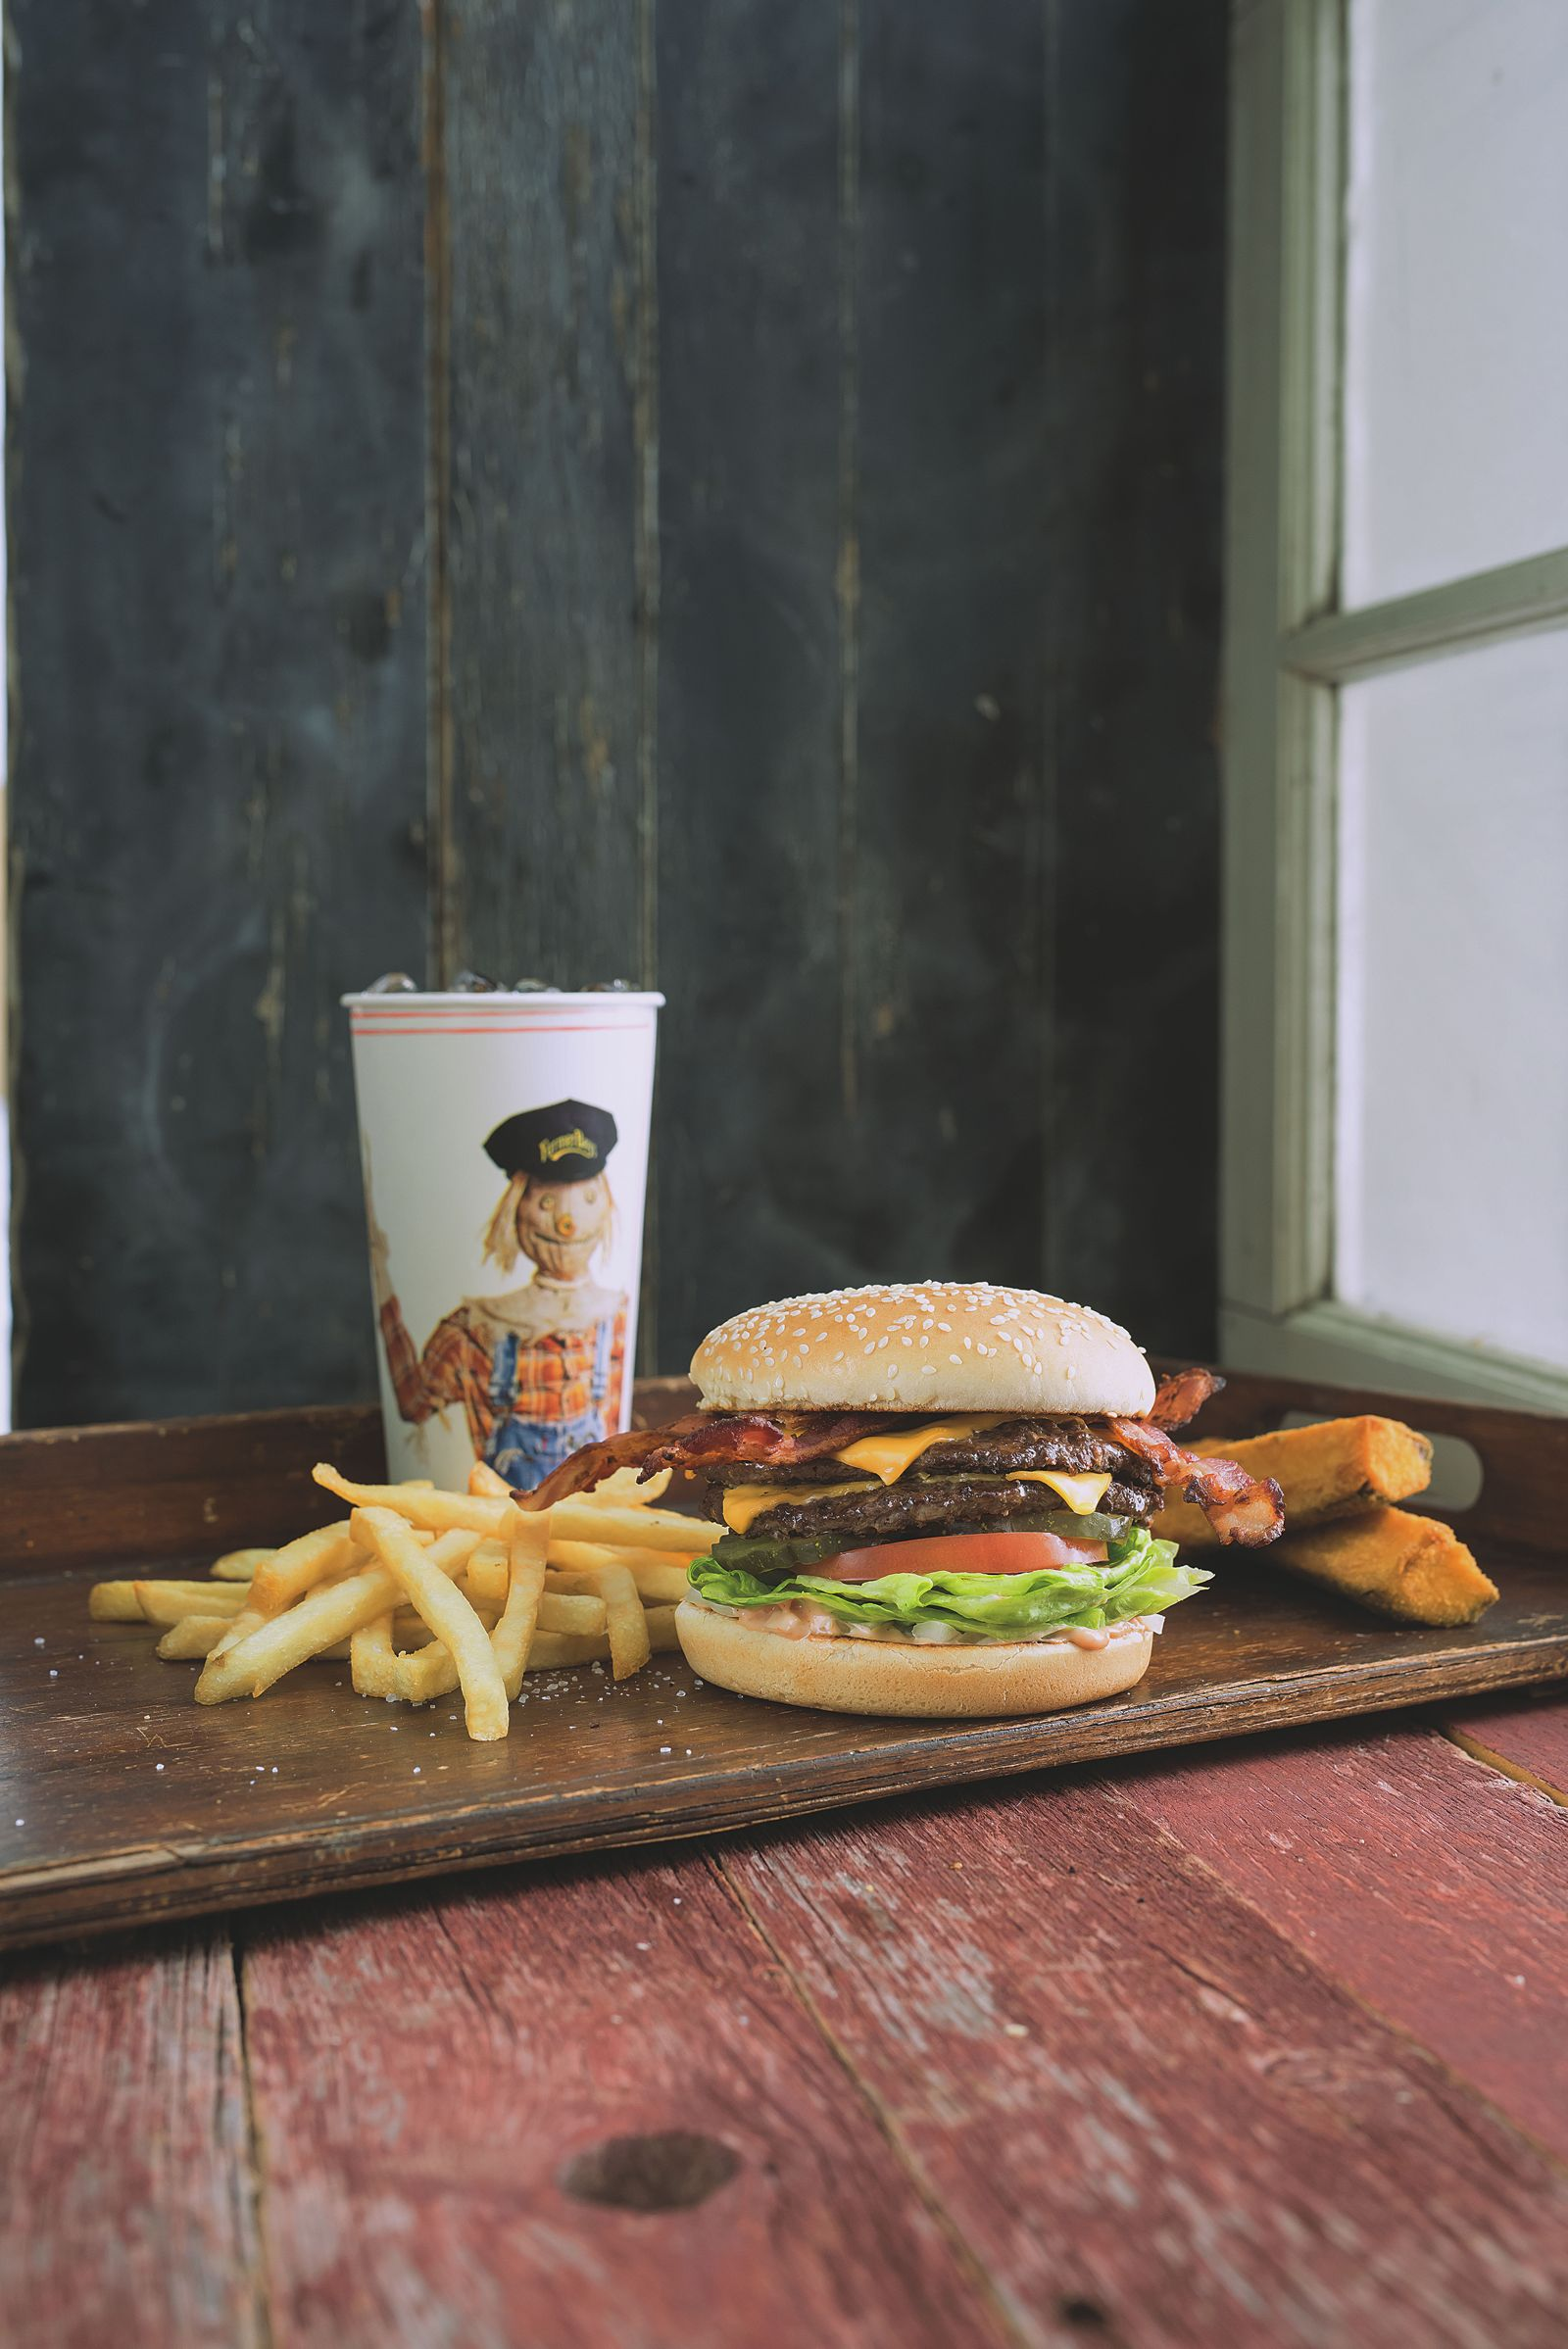 Farmer Boys, the Riverside-based fast casual concept known for its award-winning burgers and exceptional service, will open its seventh location in the city of Riverside at 20631 Van Buren Blvd this July.